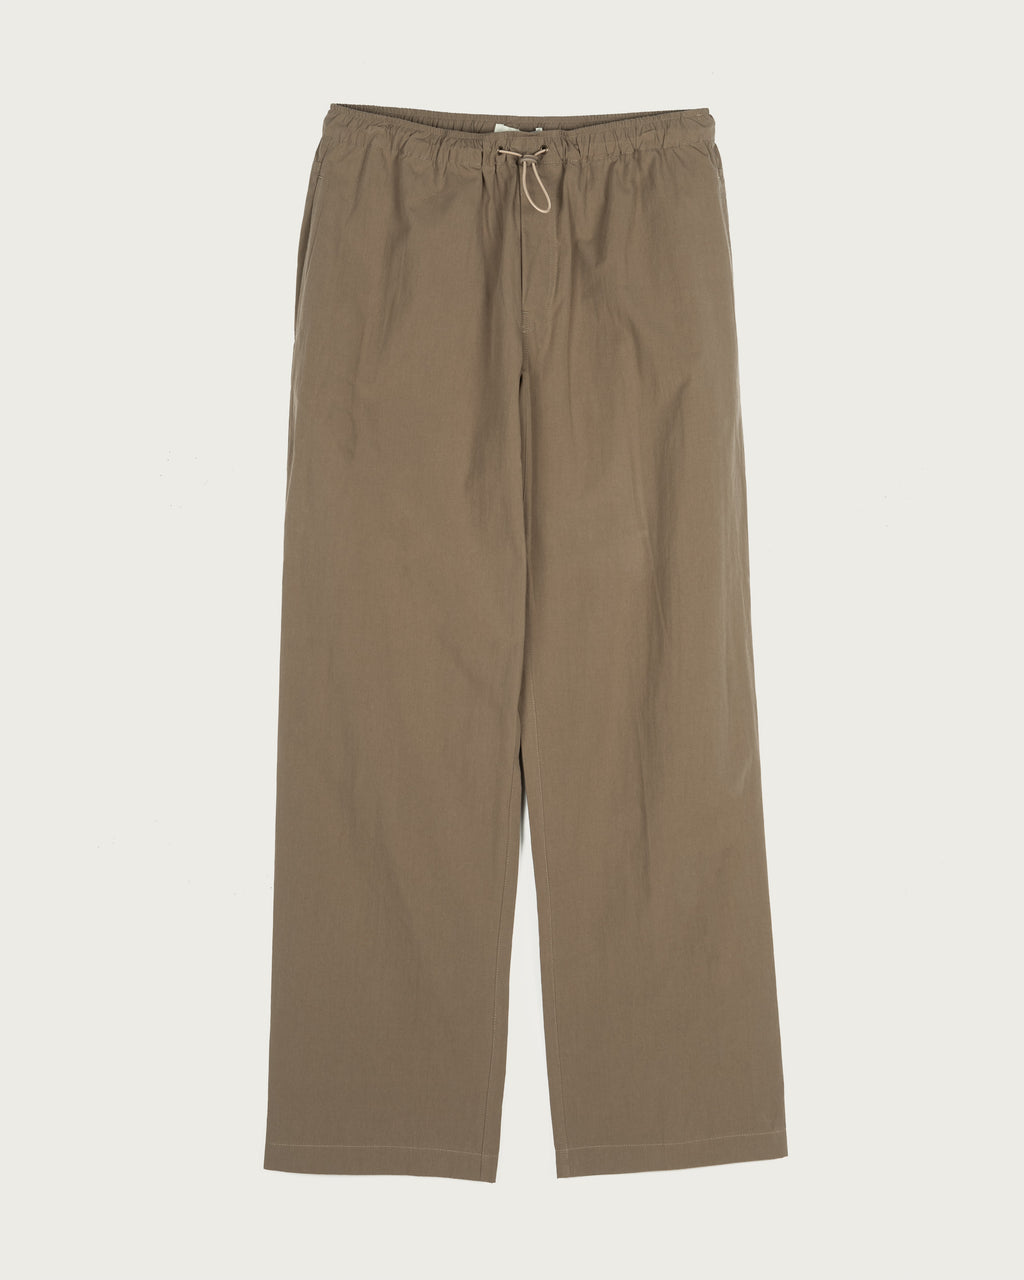 Slack Pants - Light Olive